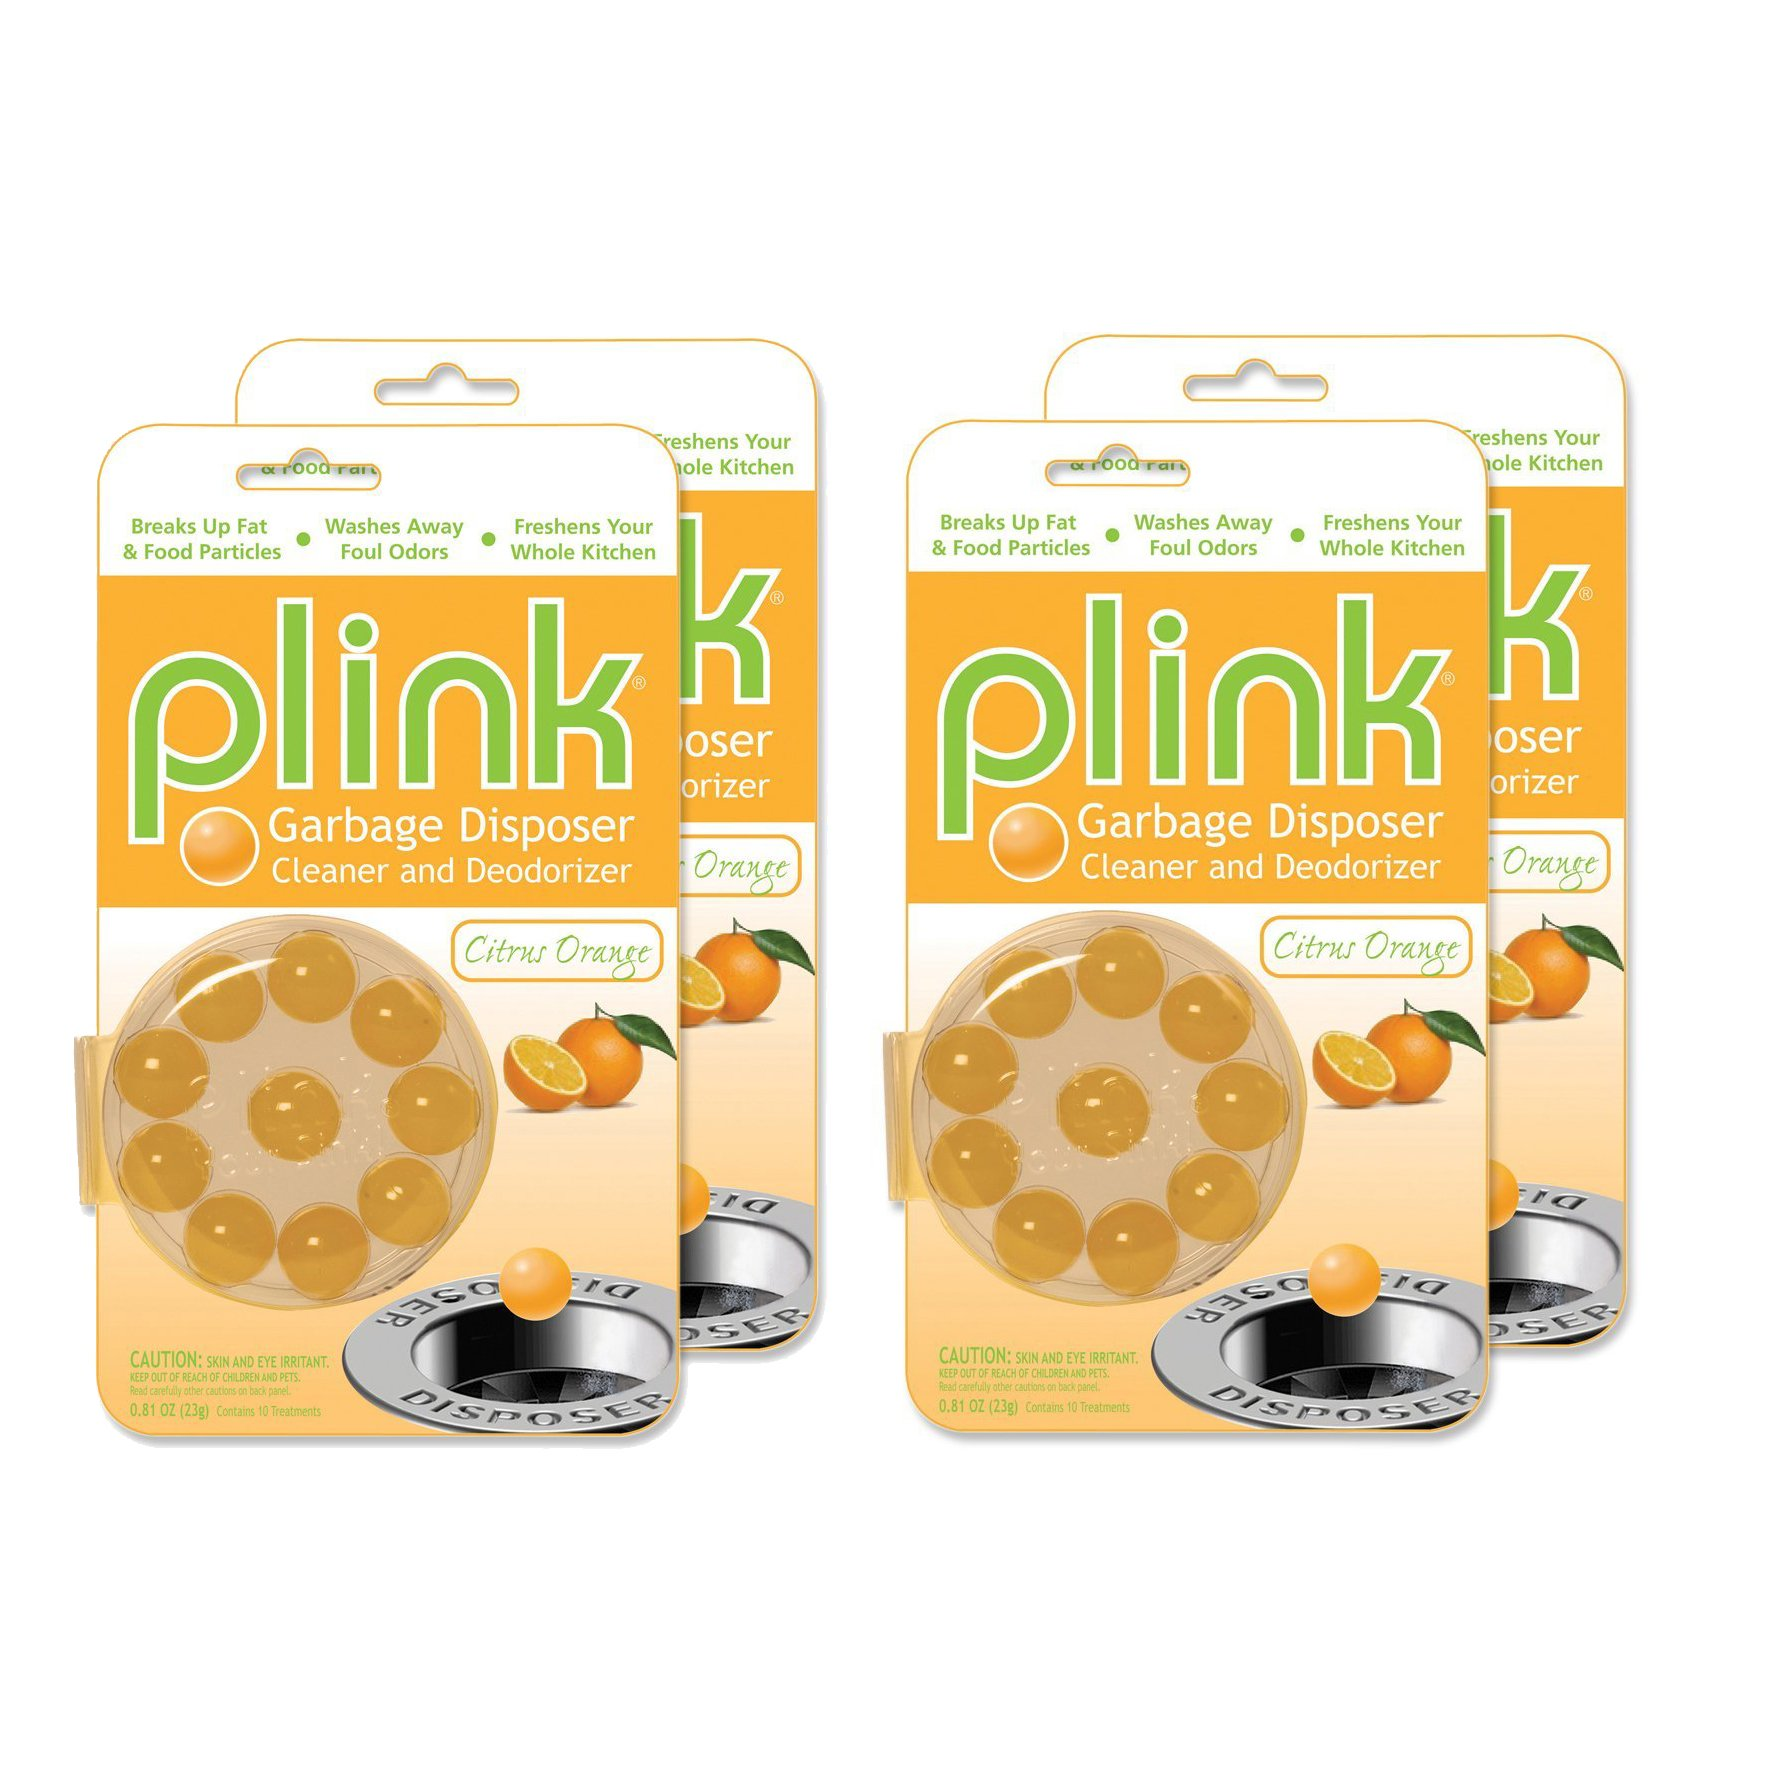 Compac's Plink Garbage Disposal Cleaner & Deodorizer Infuses and Freshens Your Entire Kitchen With 4 Crisp, Clean, Exciting Scents-Waste Disposal Cleaner Orange, 4 Packs (40 Pods)